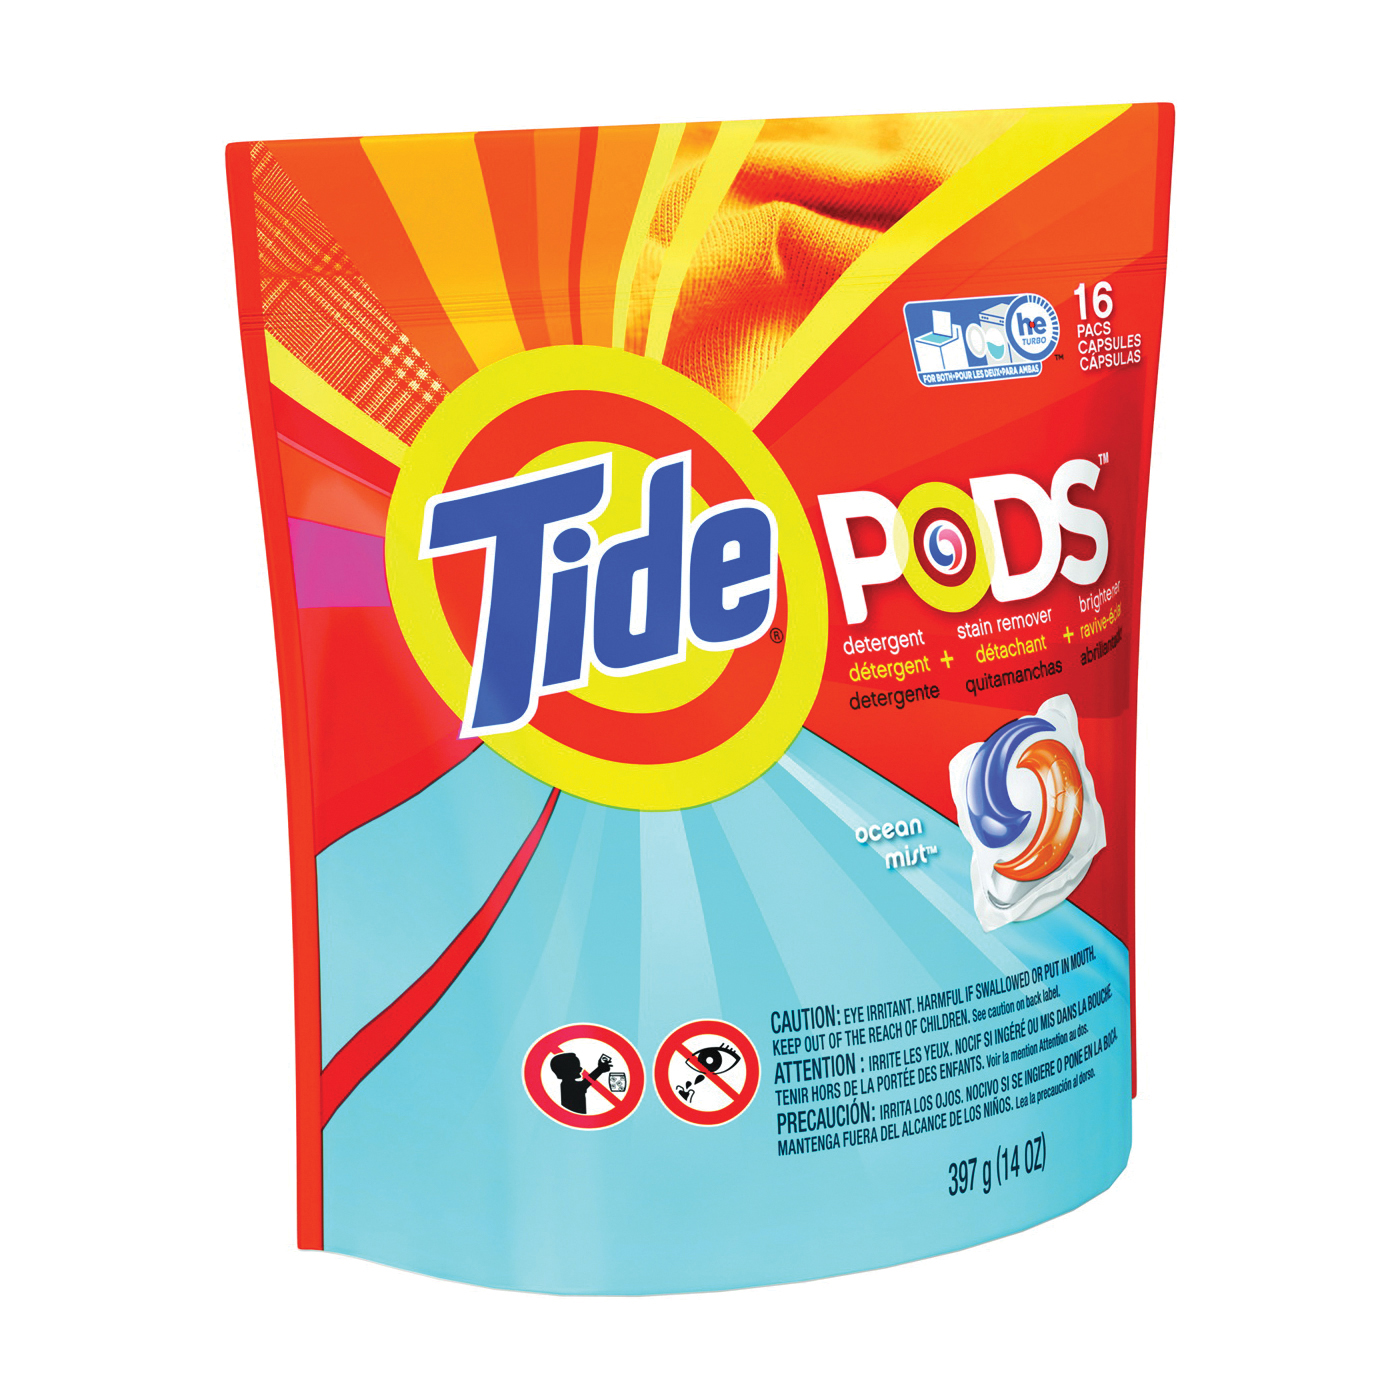 Picture of Tide 93119 Laundry Detergent, 16 CT, Powder, Ocean Mist